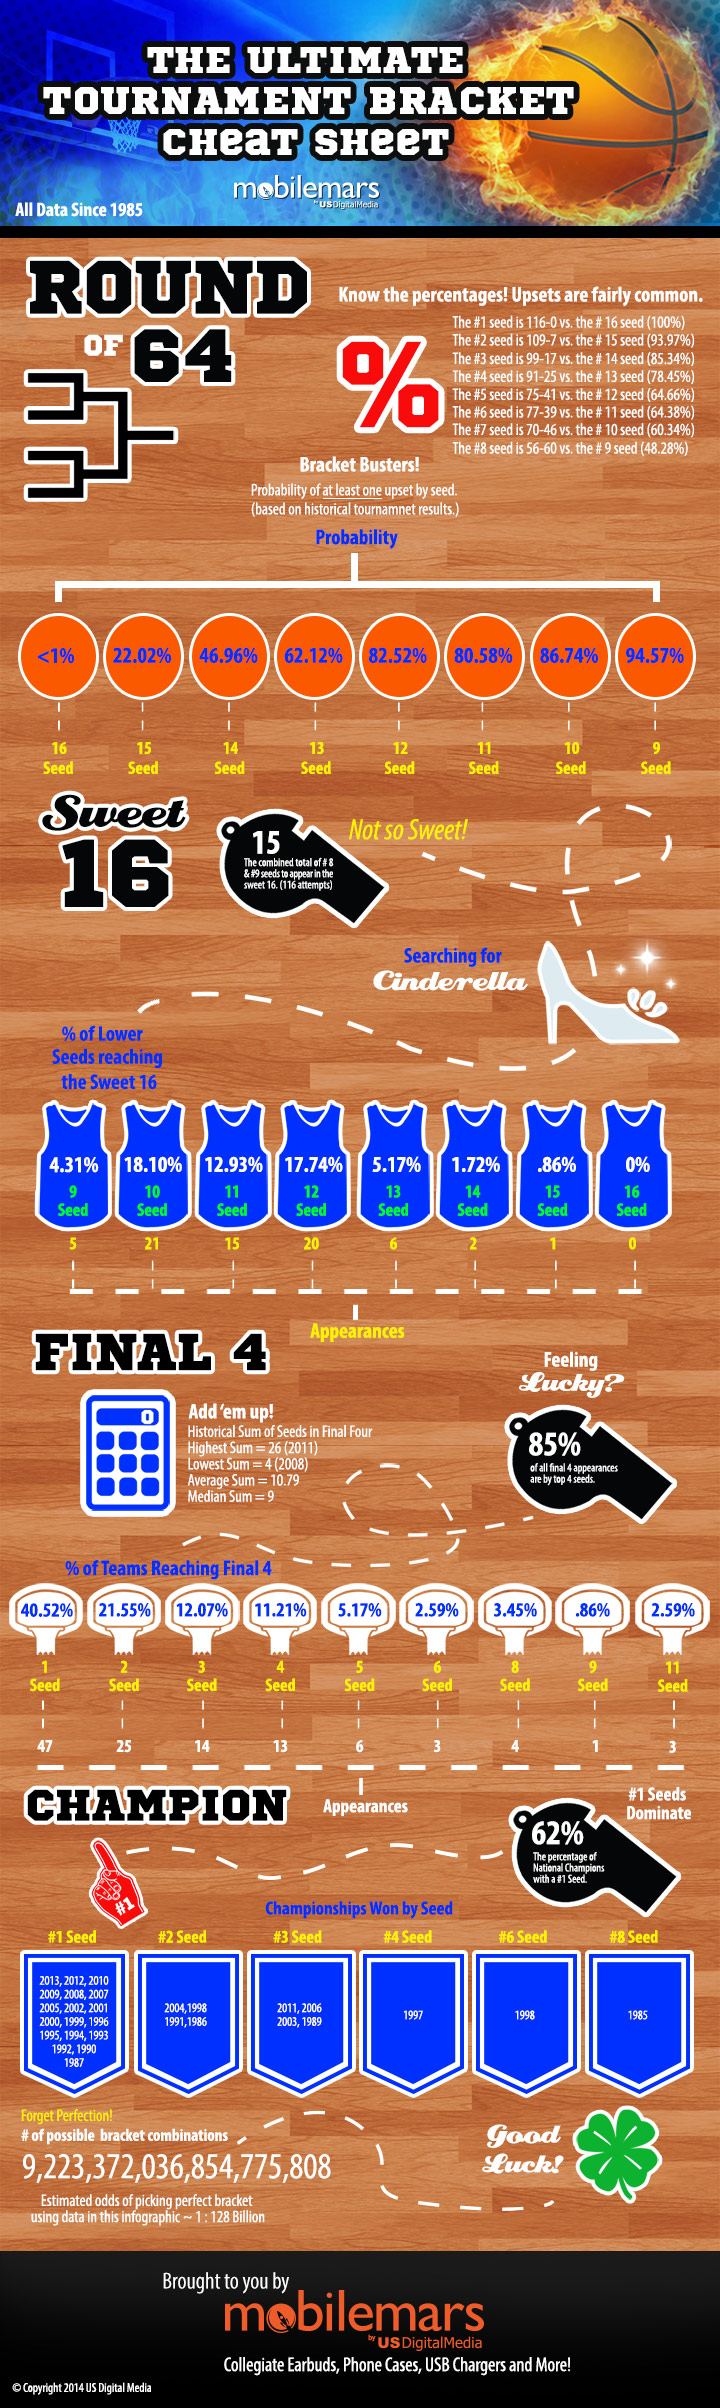 march-madness-infographic-mobilemars